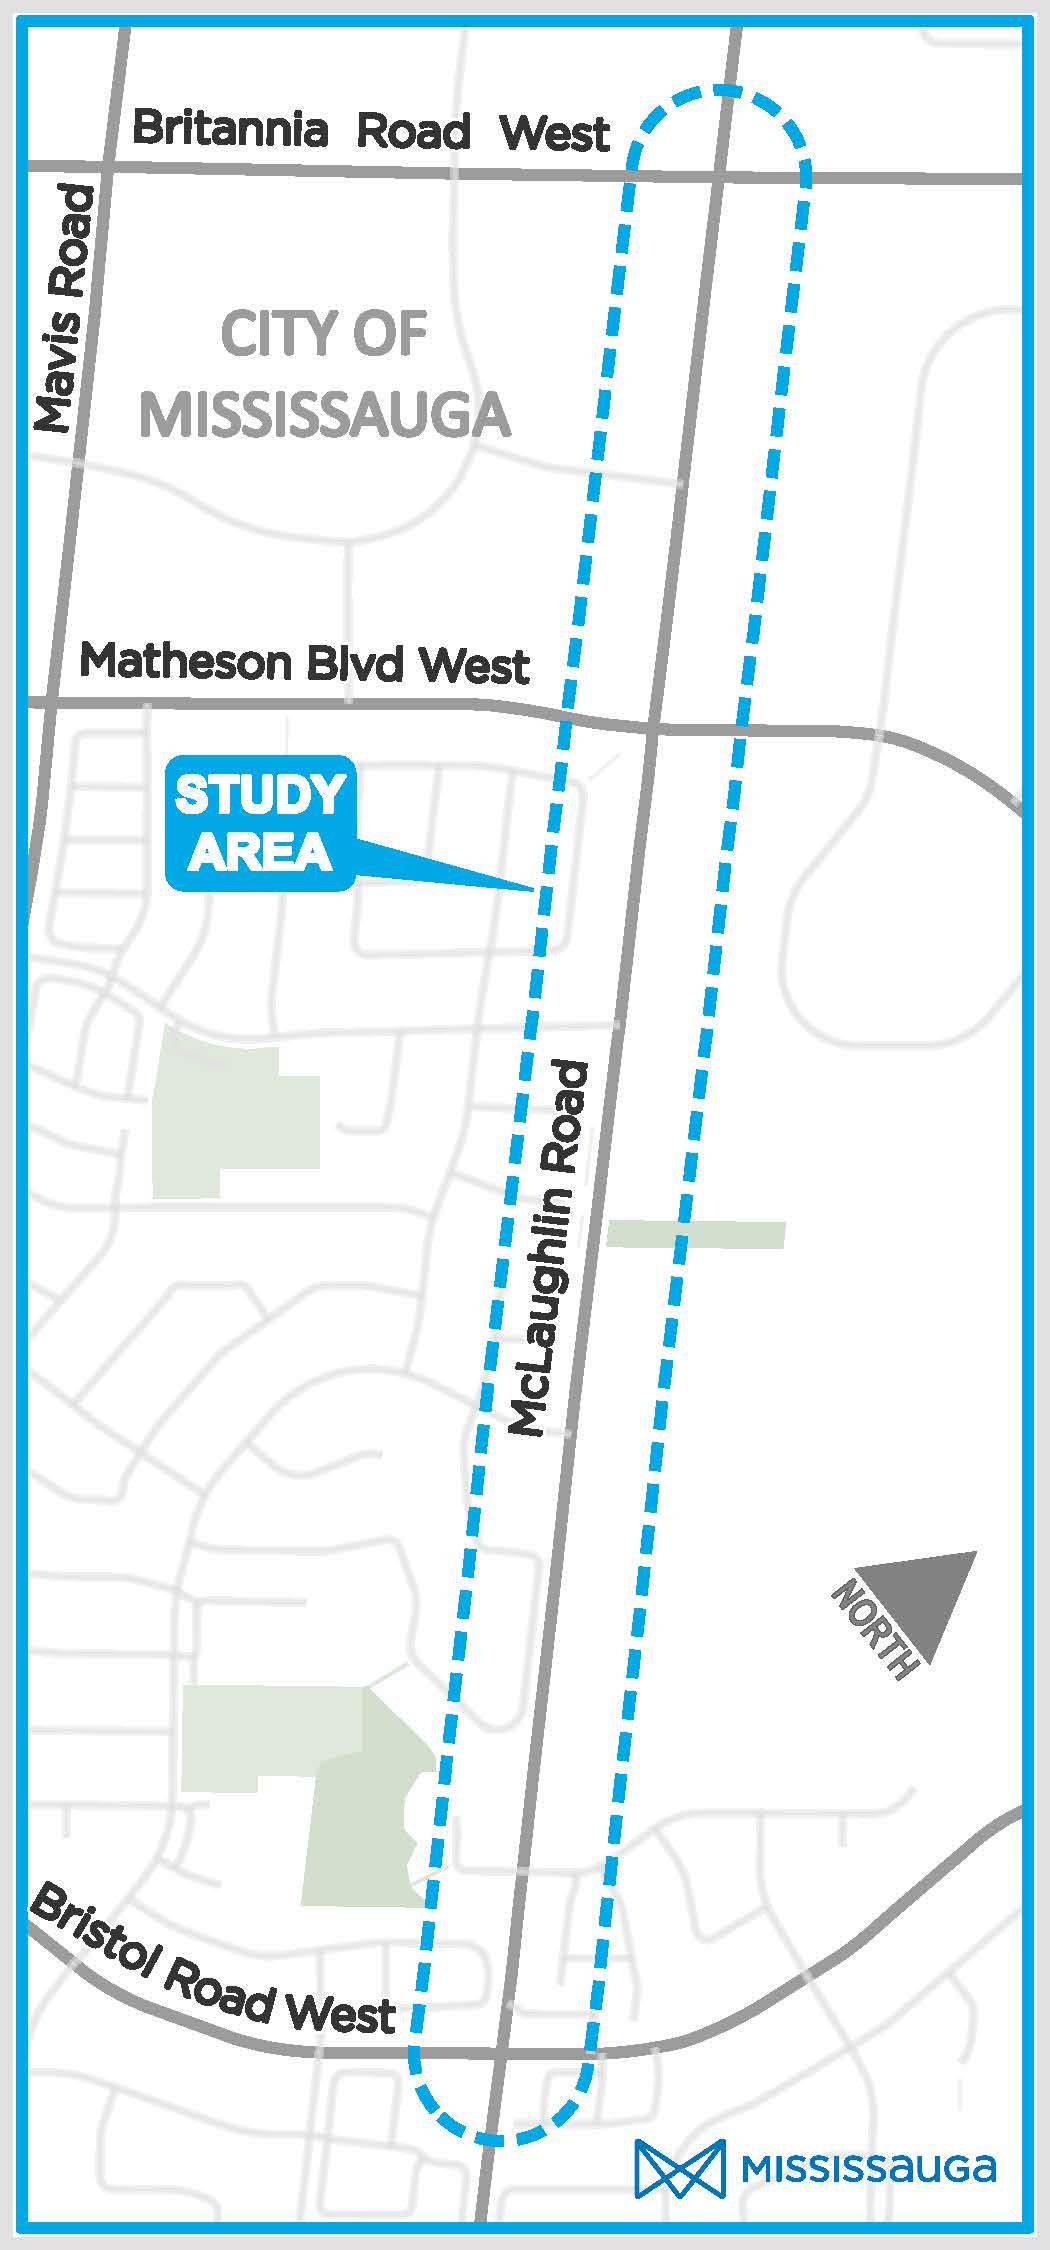 Map of the study area, covering McLaughlin Road from Bristol Road West in the South to Britannia Road West in the North.